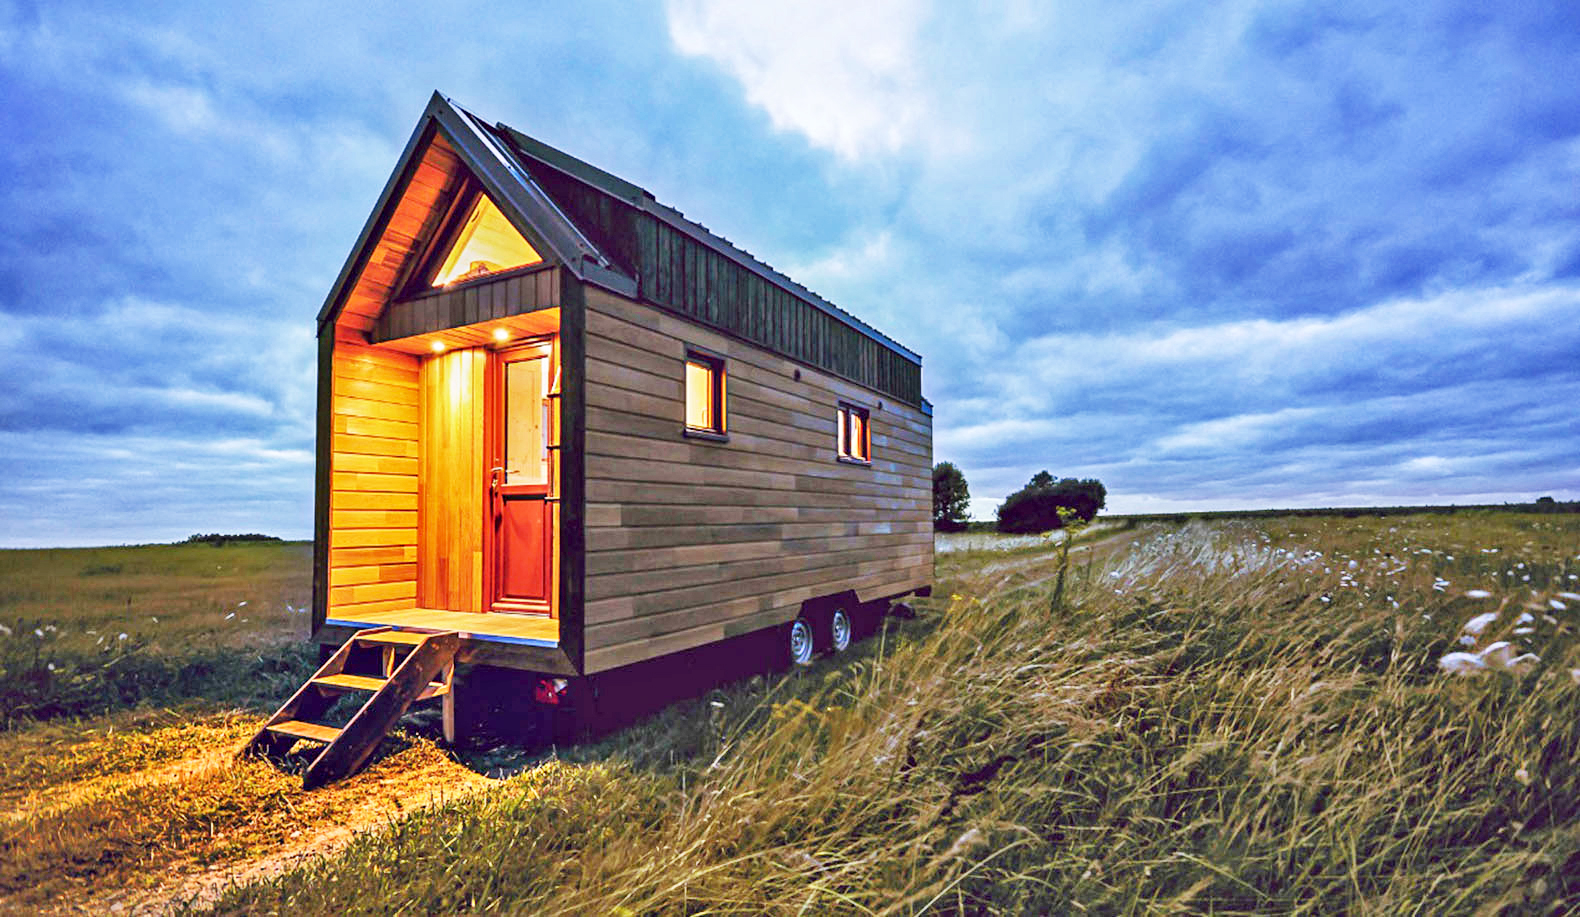 Astonishing Fully Furnished Odyssee Tiny House From France Easily Fits A Download Free Architecture Designs Sospemadebymaigaardcom